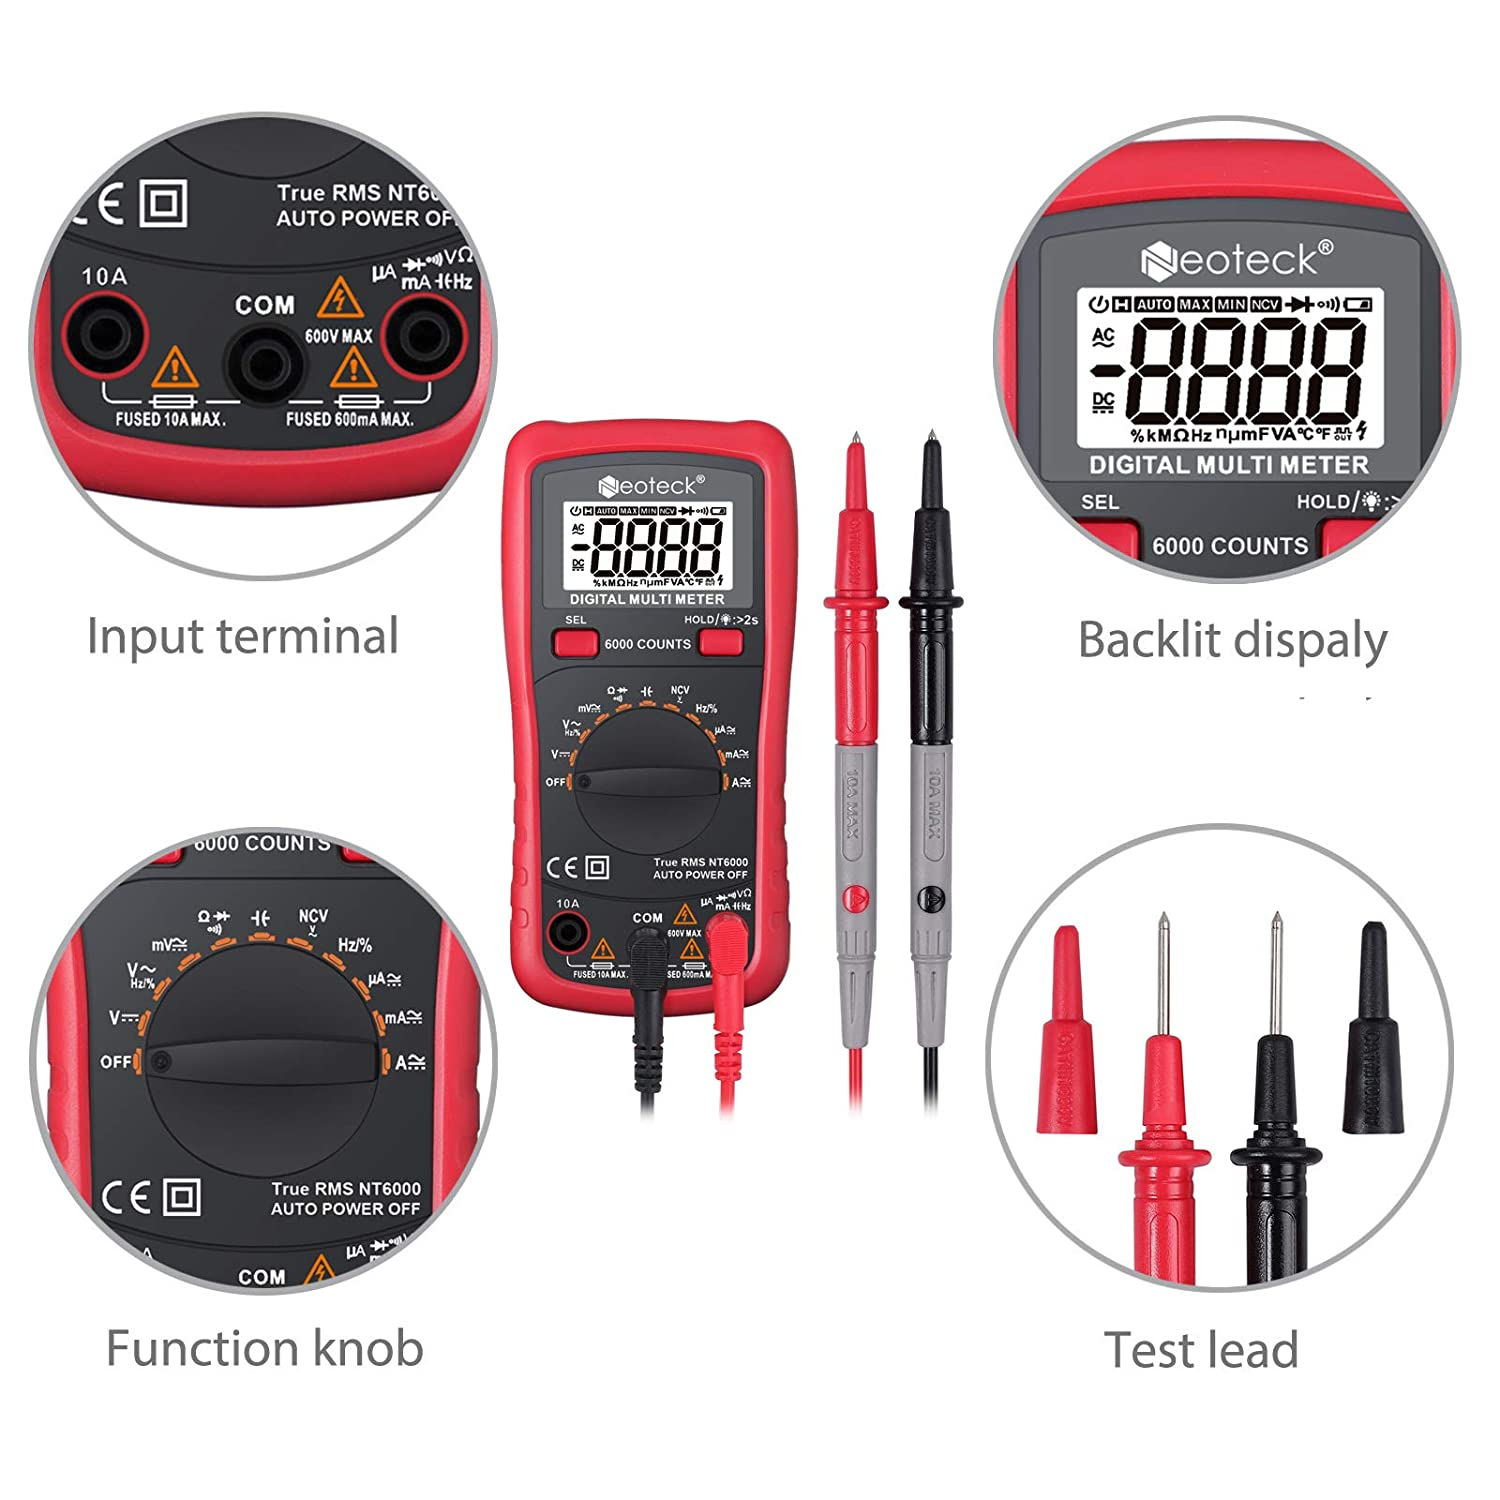 Neoteck 6000 Counts TRMS Auto Ranging Digital Meter Tester with NCV AC//DC Voltage Current Resistance Capacitance Continuity Frequency for Laboratory Factory and Other Social Fields Green